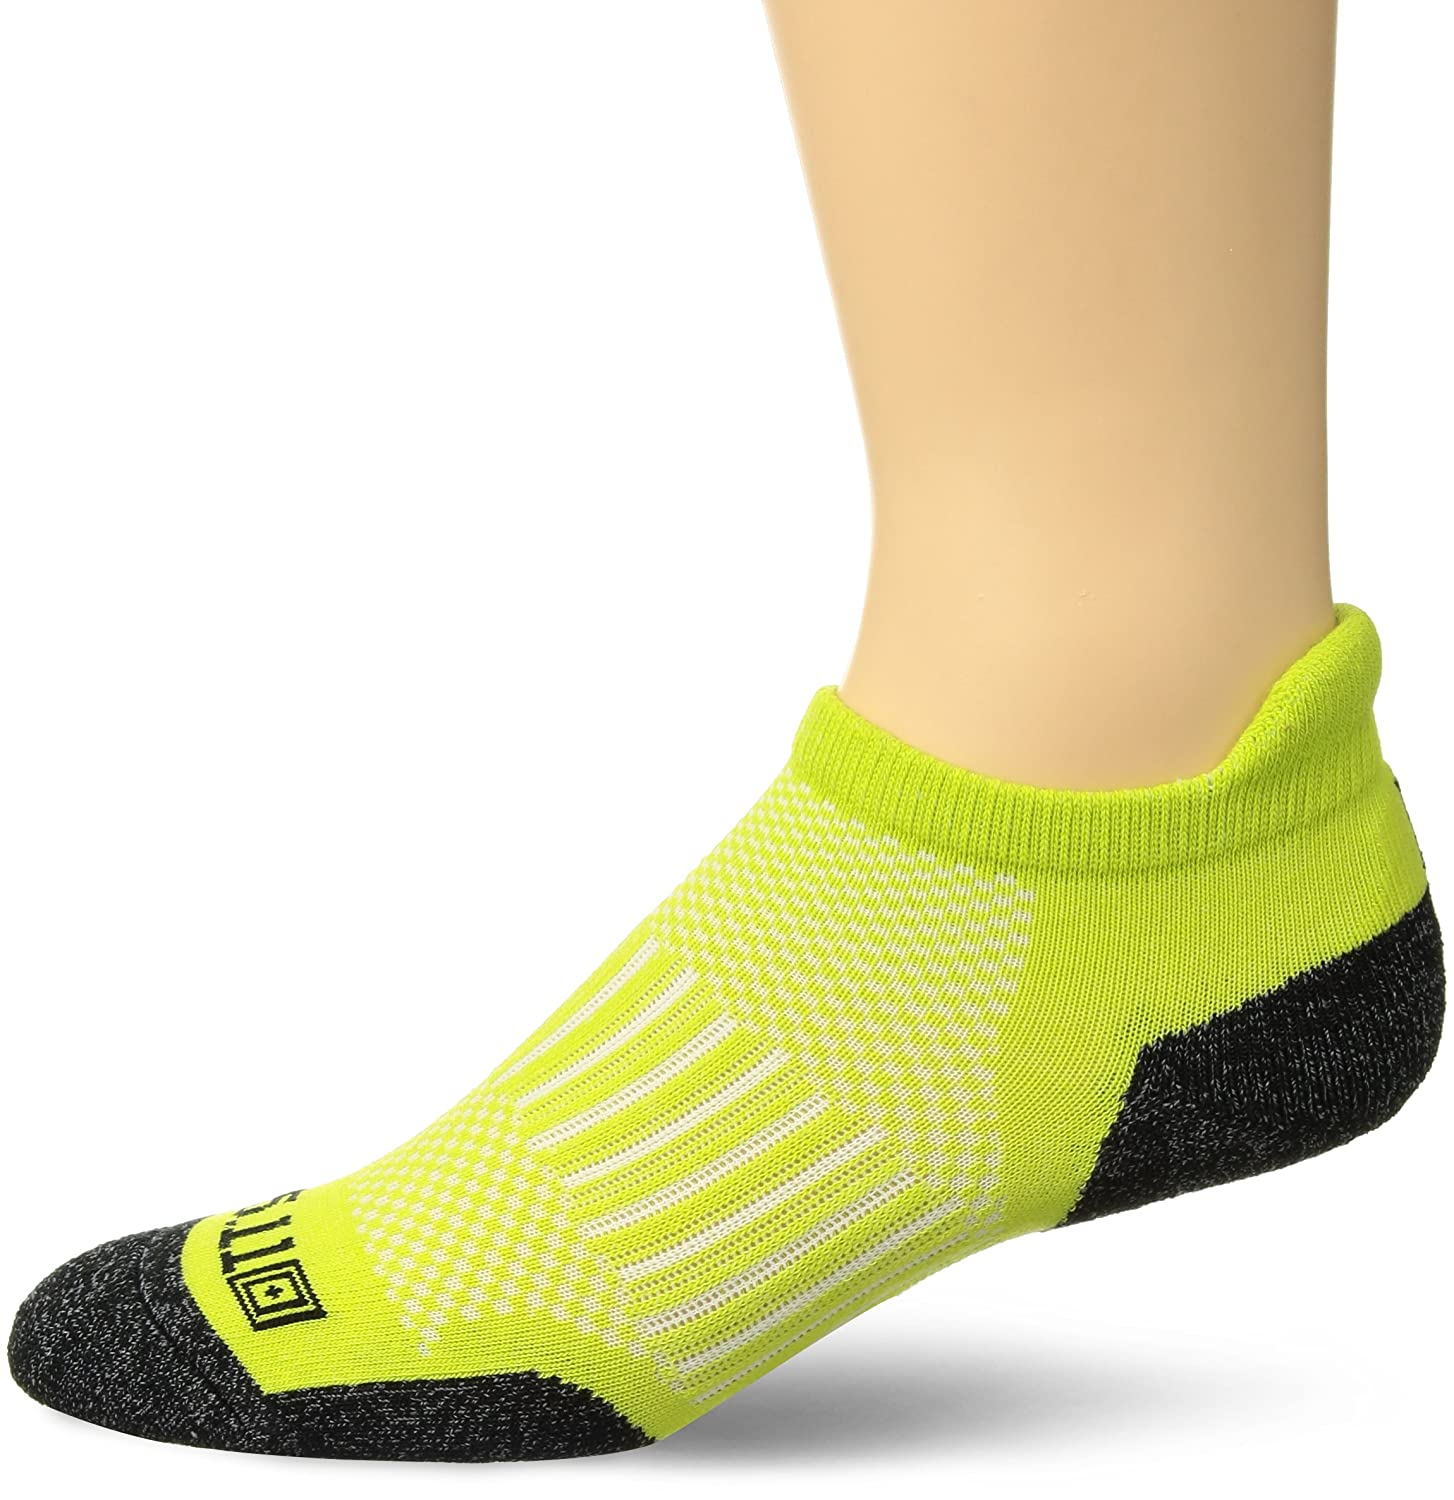 5-11-Tactical-Men-039-s-ABR-Training-Socks-Compression-Ankle-Style-10031-Size-S-L thumbnail 17